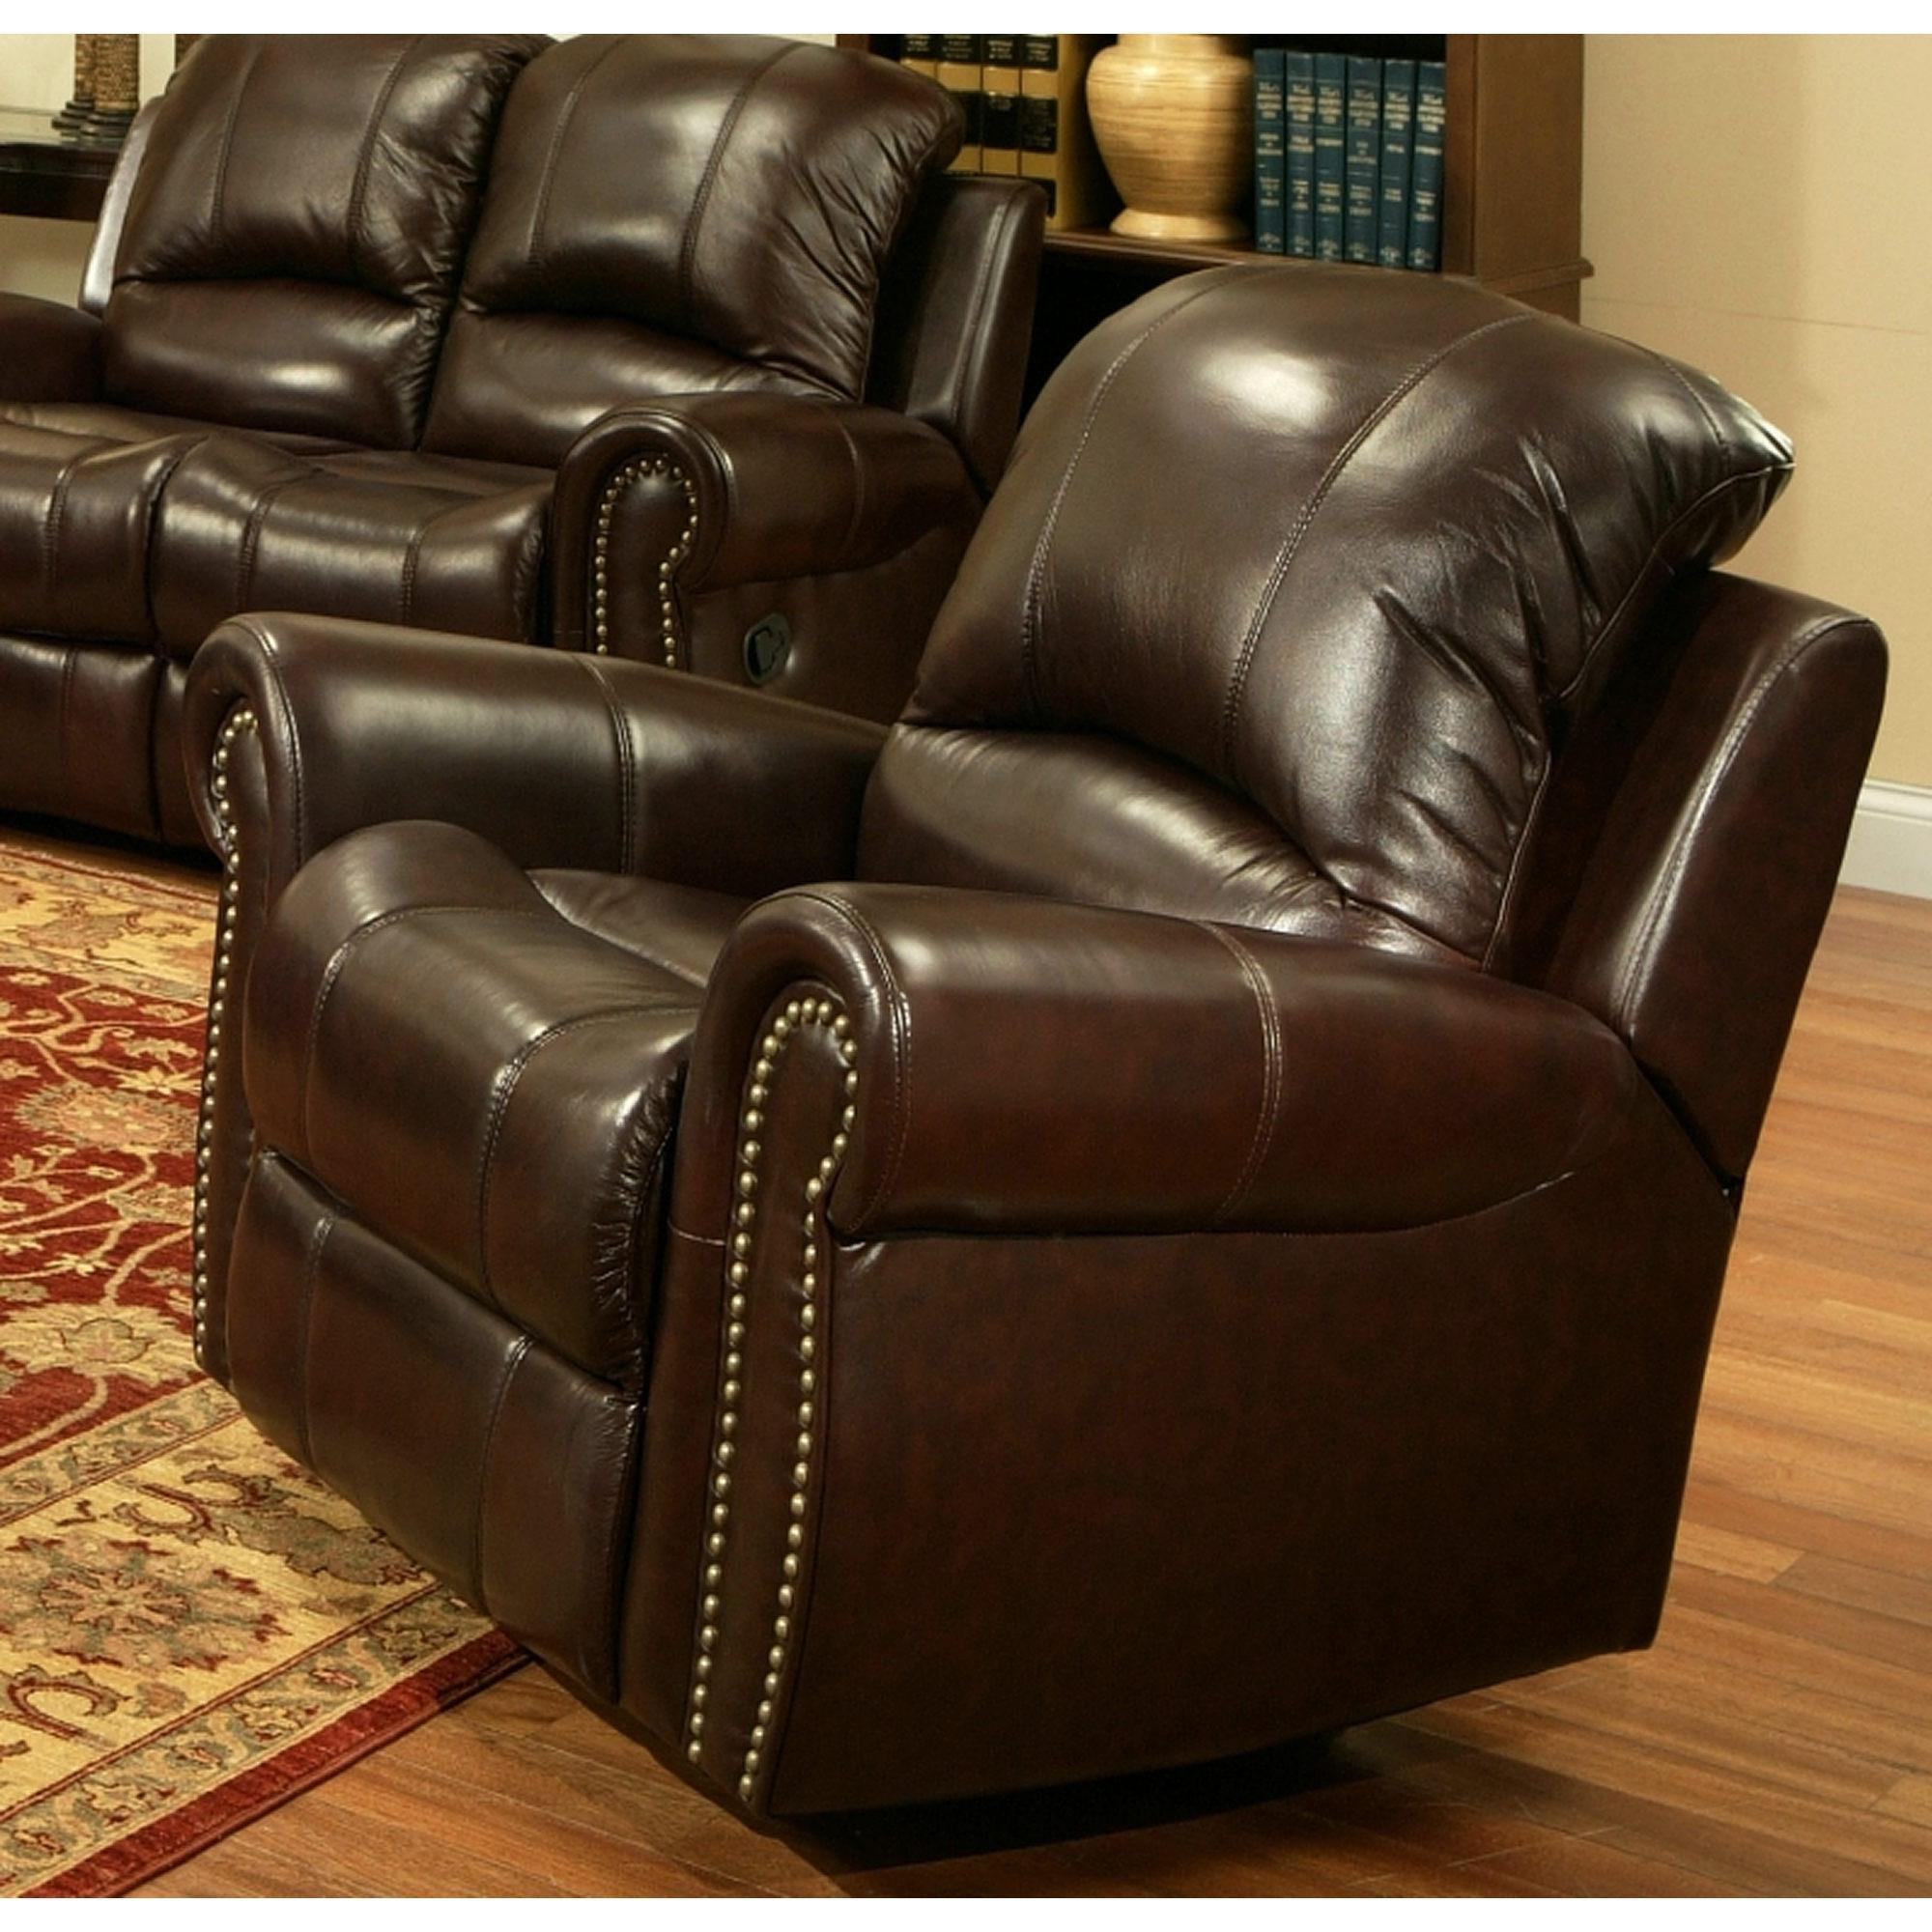 Top Rated Recliners | Homesfeed Within Abbyson Recliners (View 9 of 20)